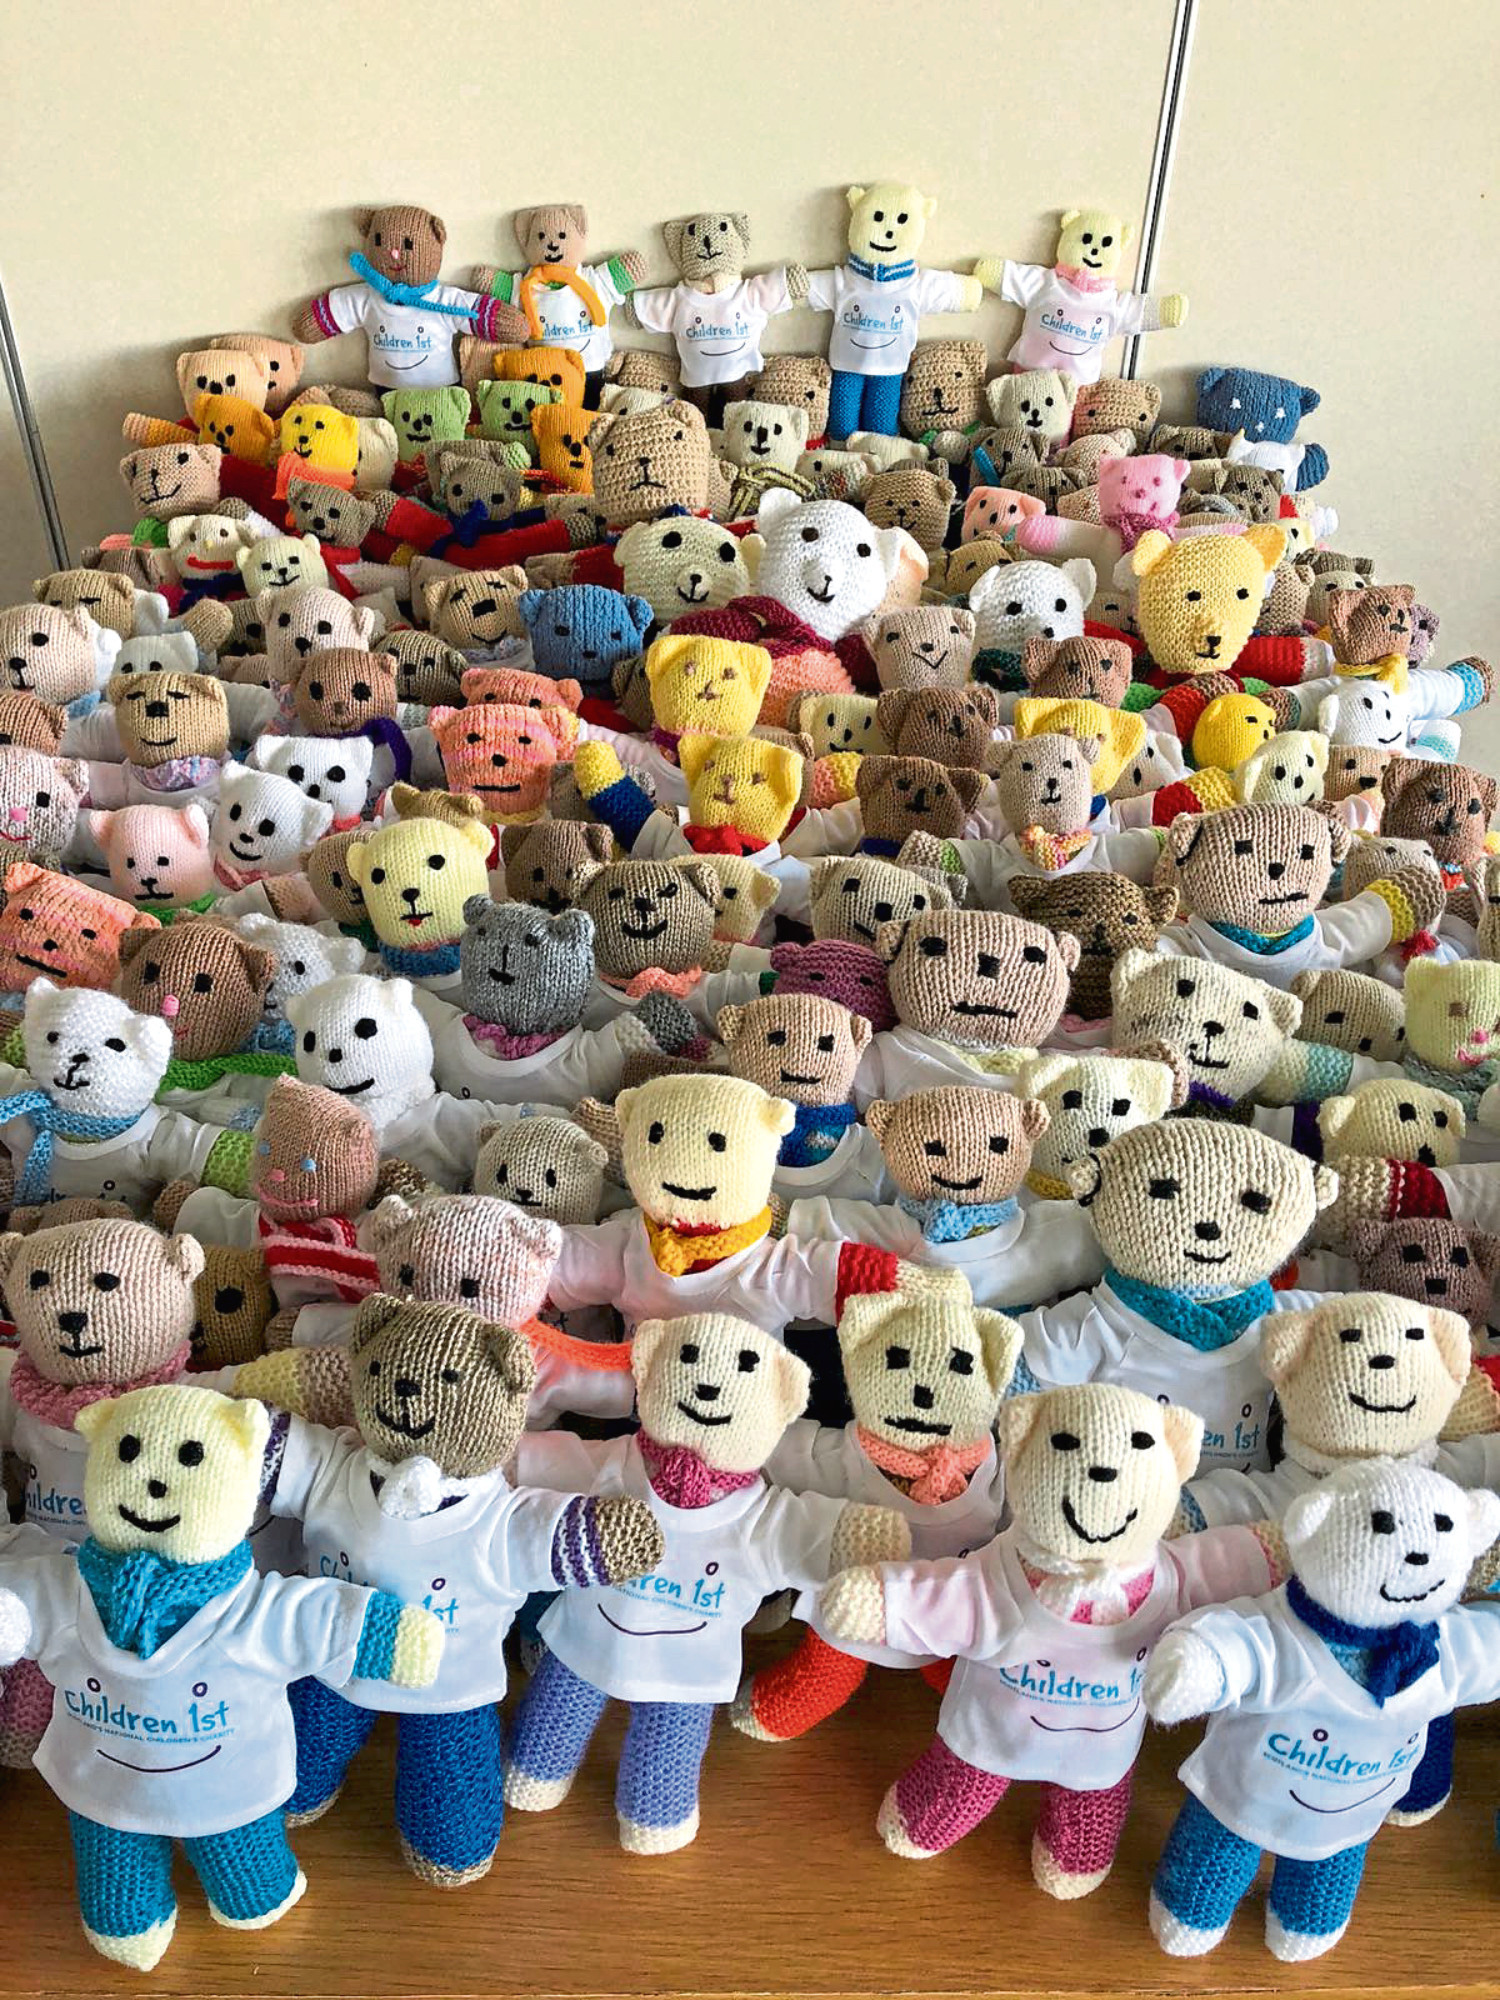 Some of the 180 teddies